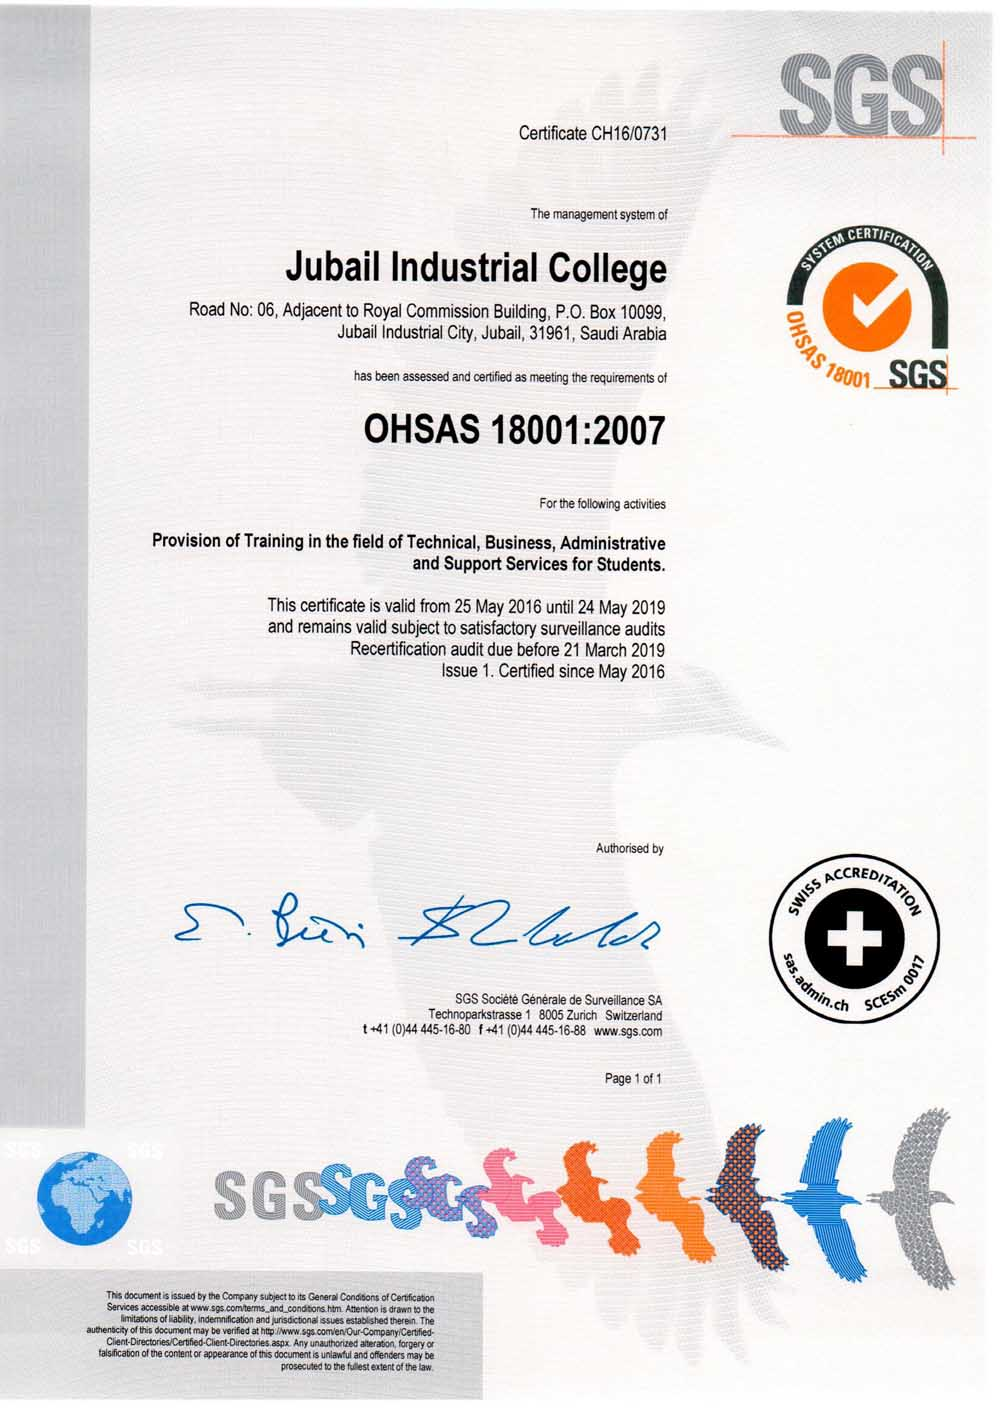 JUBAIL INDUSTRIAL COLLEGE RECEIVES OHSAS 18001 CERTIFICATION